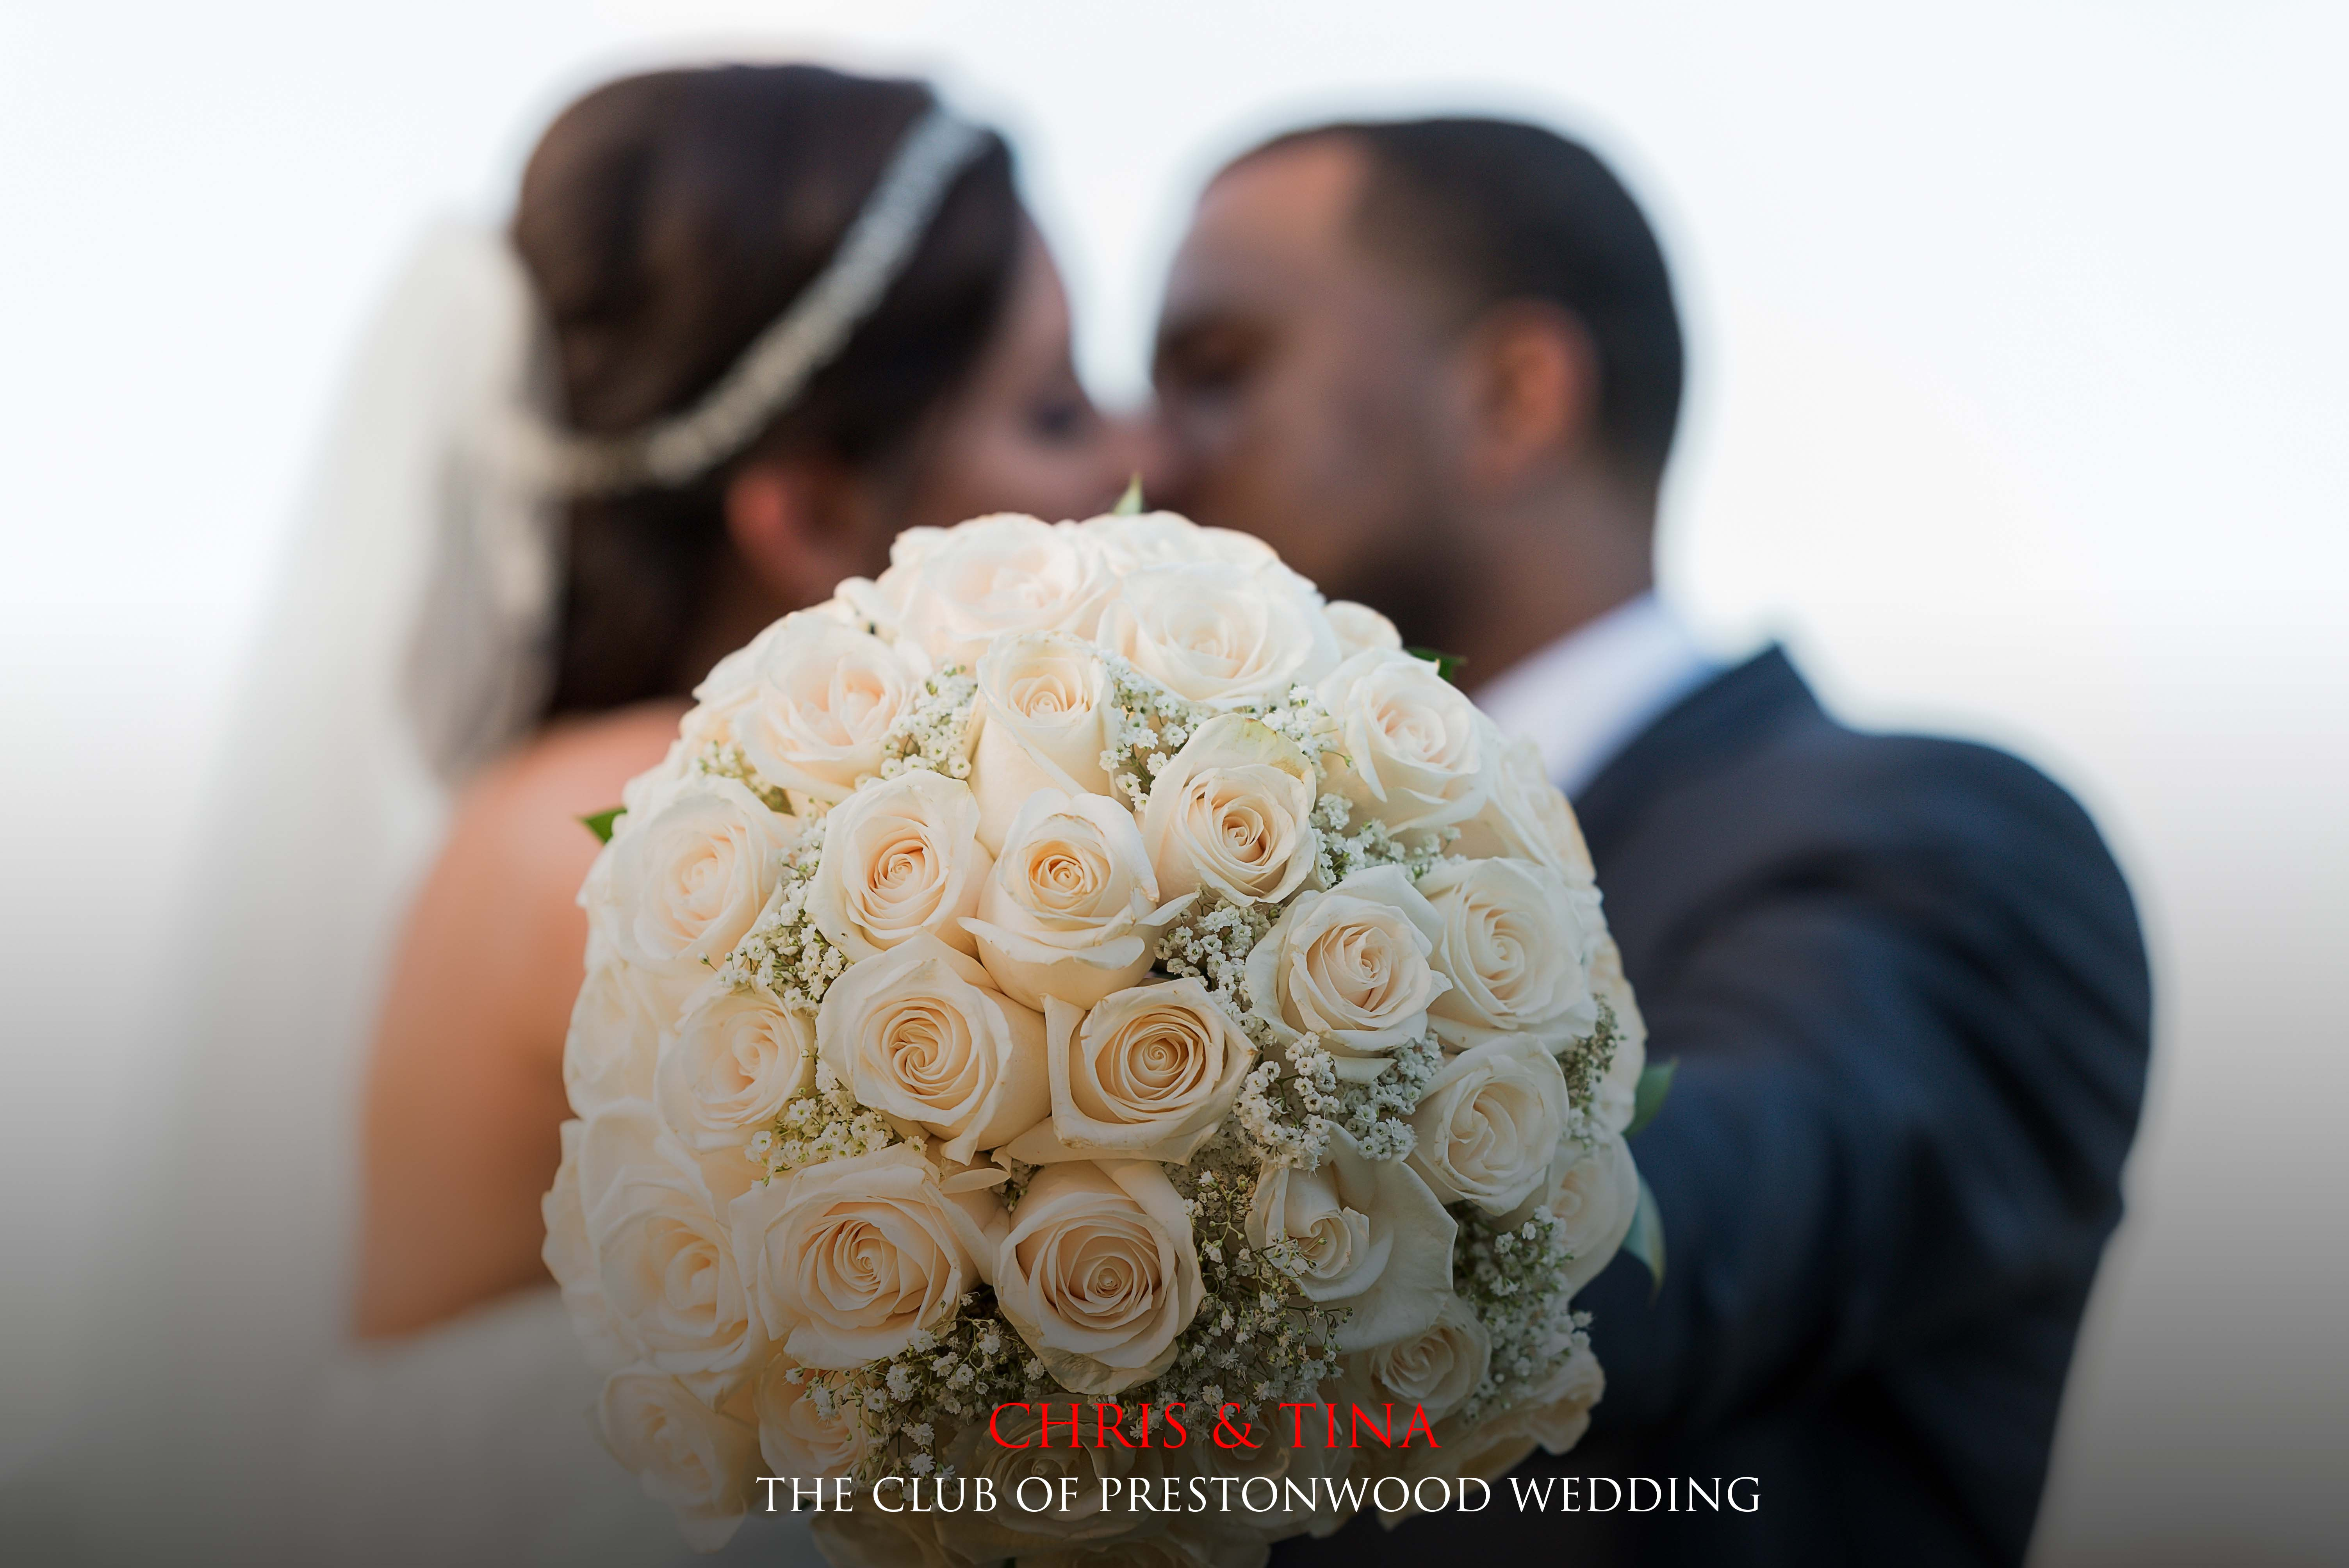 The Clubs of Prestonwood Wedding